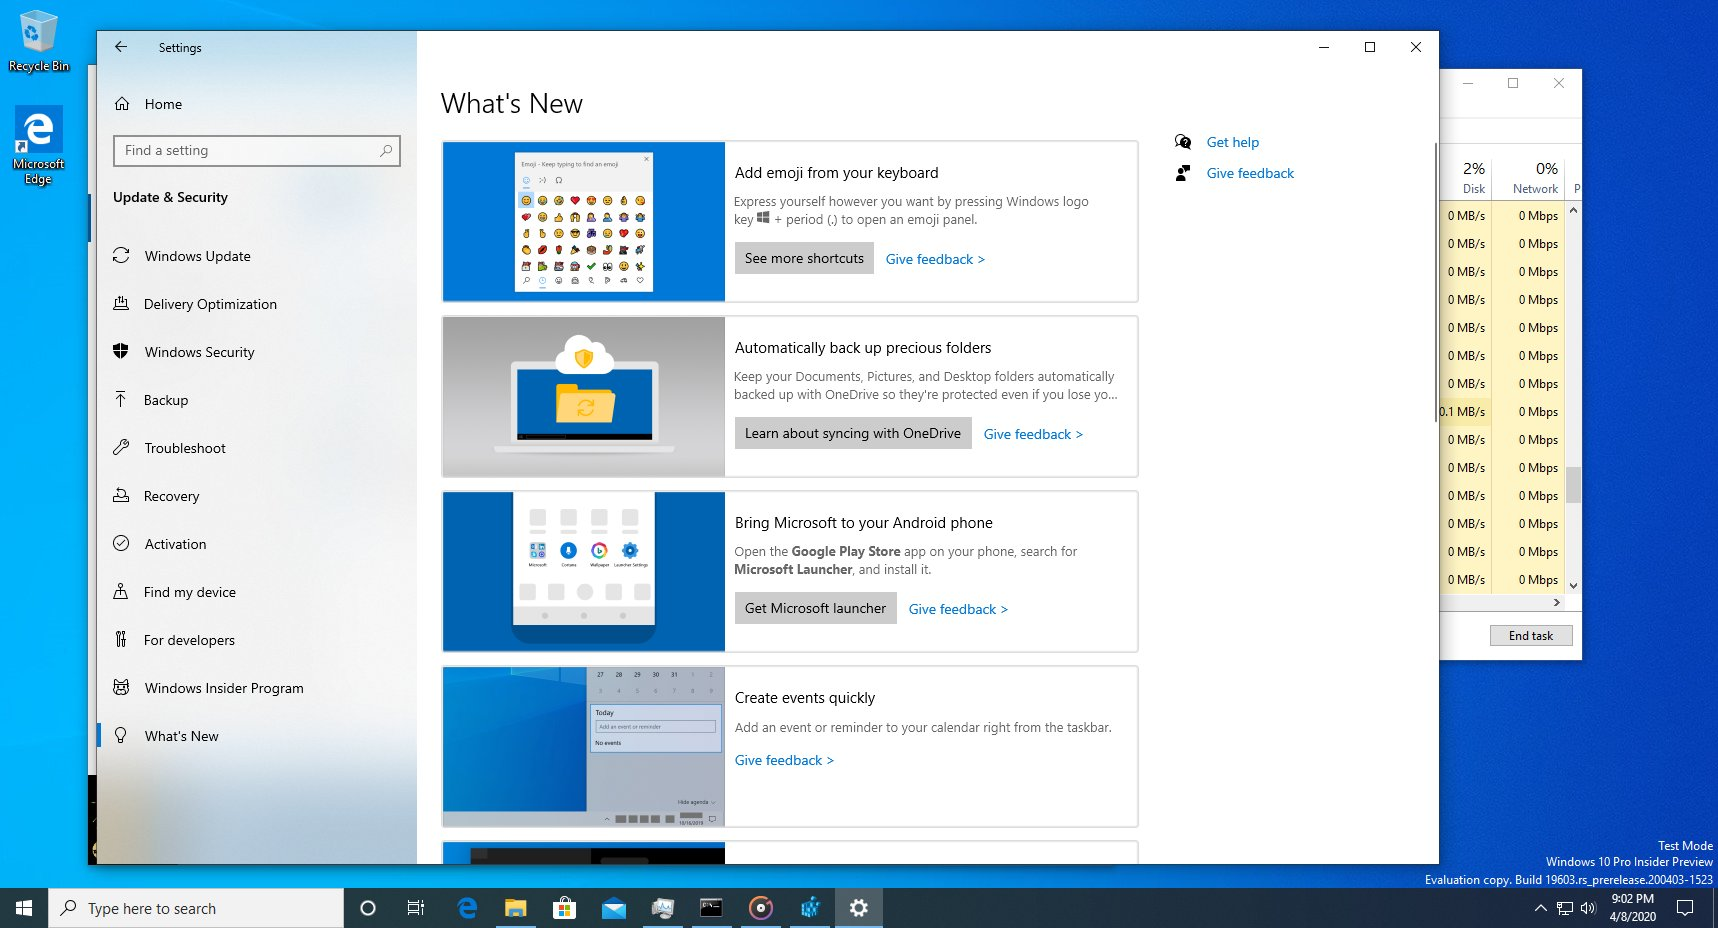 whats-new-windows-10.jpg